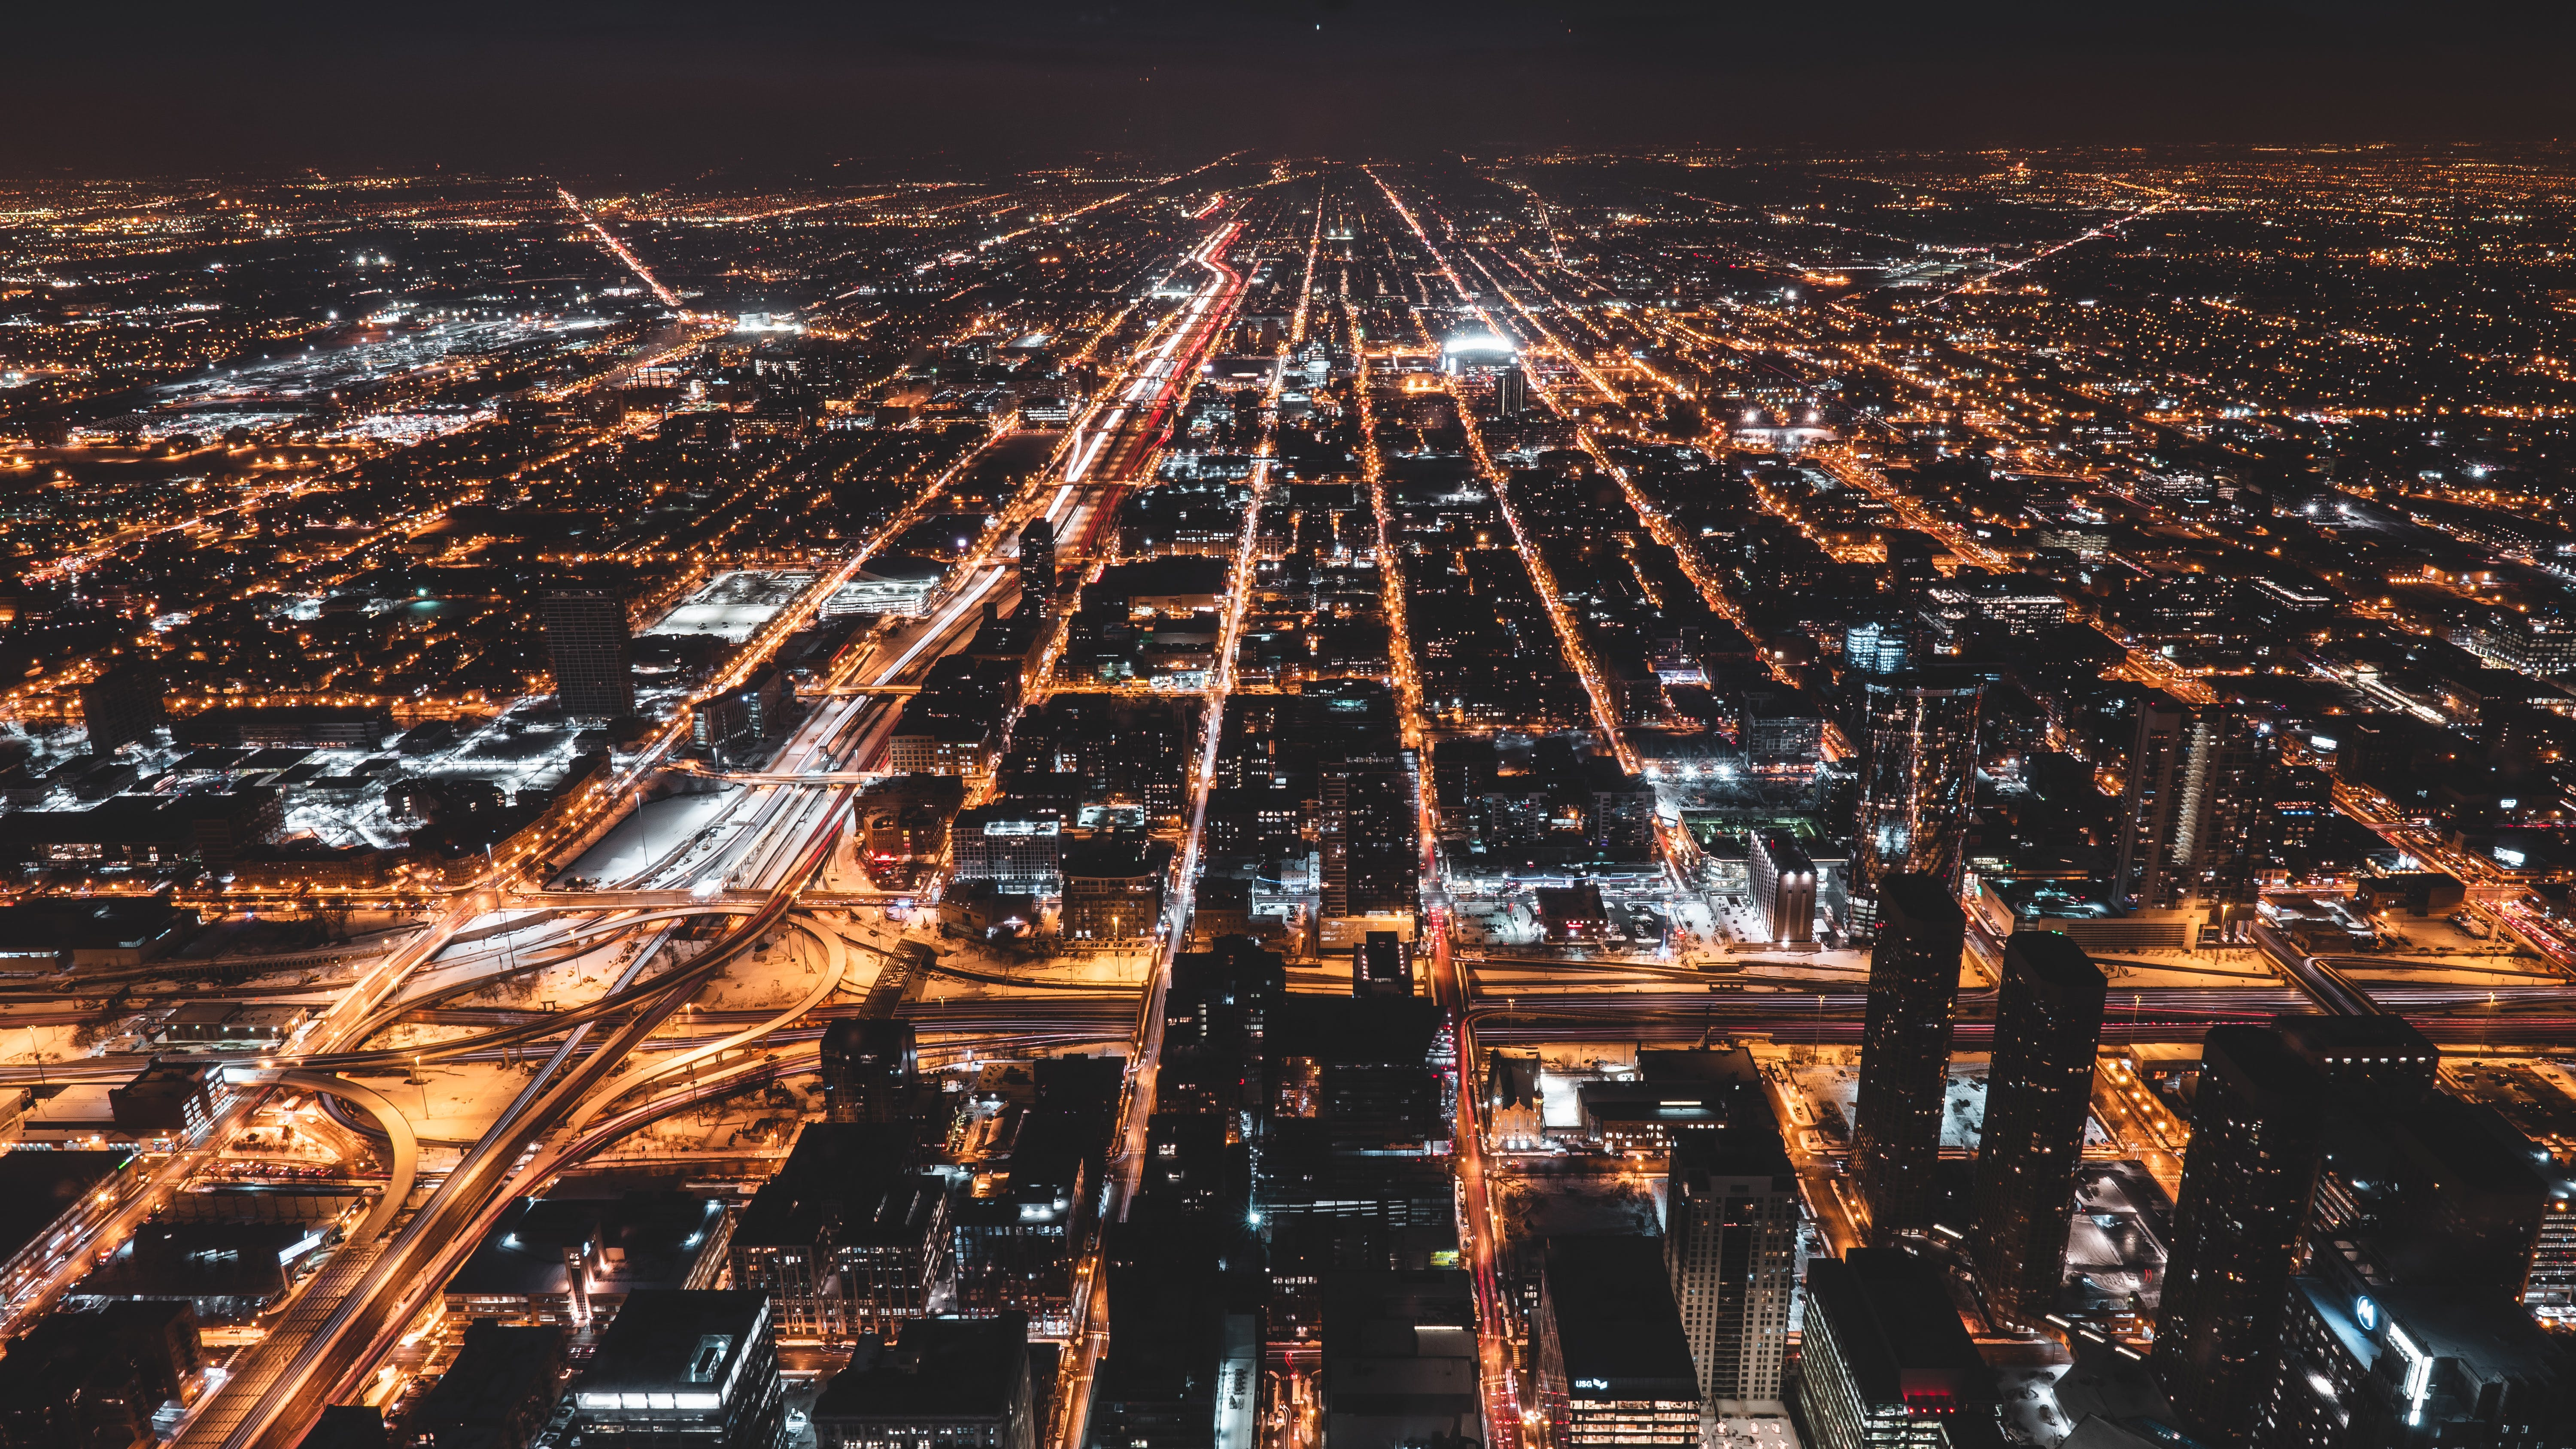 Aerial Photography Of City Buildings With Lights Turned On At Night